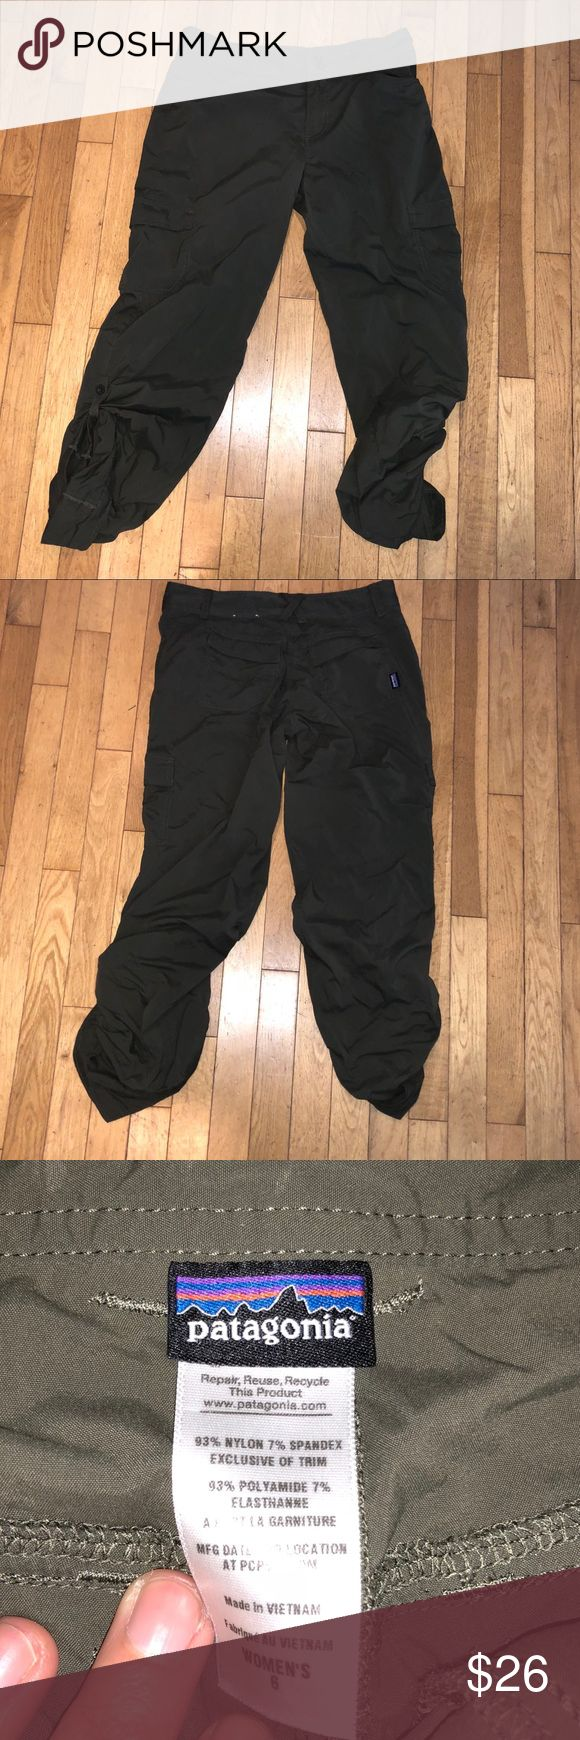 Women's Patagonia pants athletic In great shape. Gently used. No major signs of wear. Open to offers. Buttons on the sides to crop. Patagonia Pants